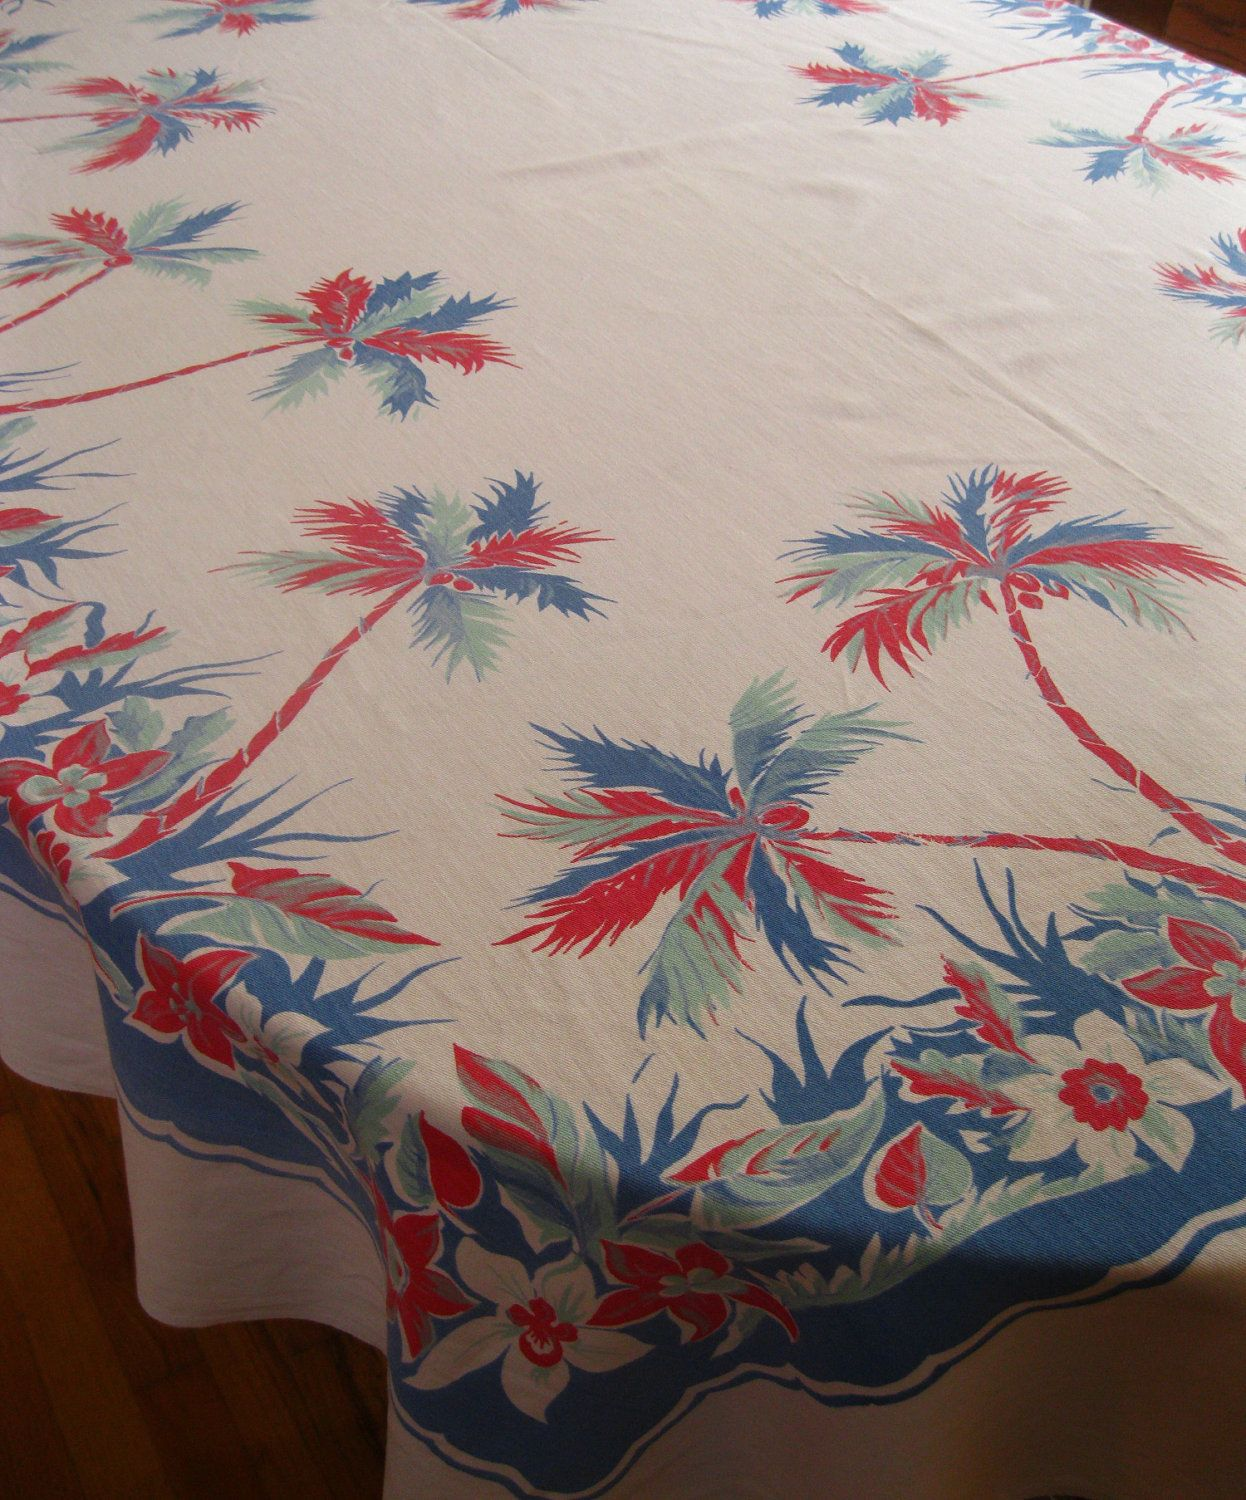 Red White Blue Vintage | Red White And Blue Vintage 1940s Tropical  Tablecloth With Palm Trees